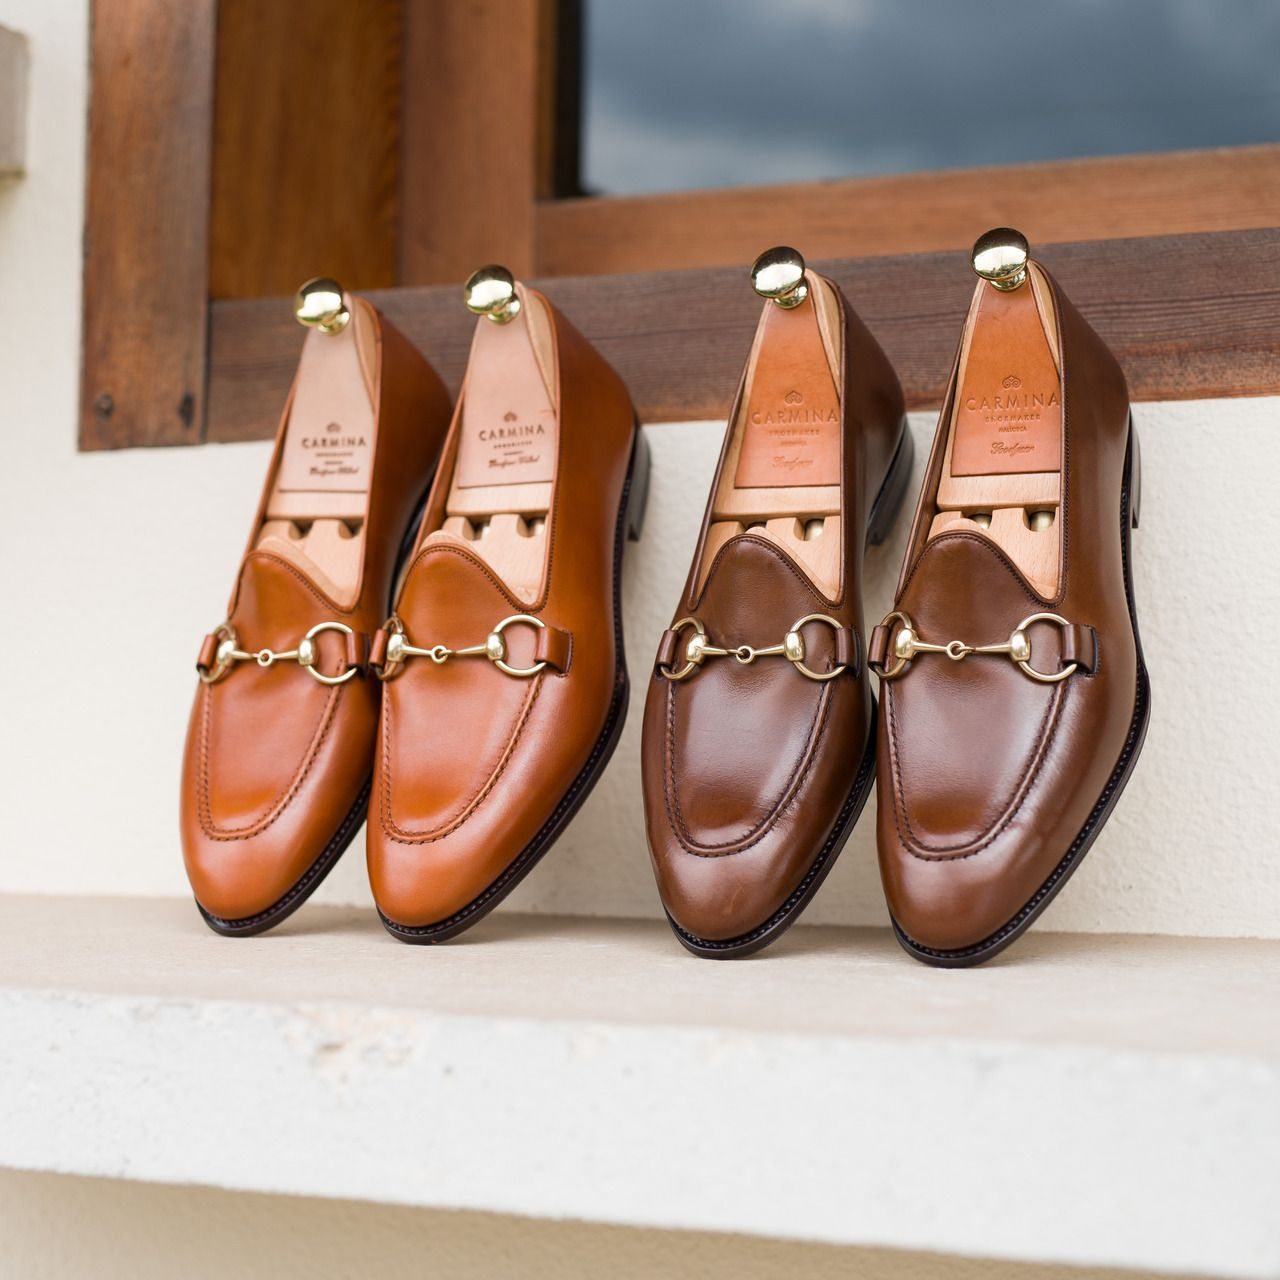 4164f65aced Carmina shoemaker — UNLINED HORSEBIT LOAFERS 80643 UETAM ...